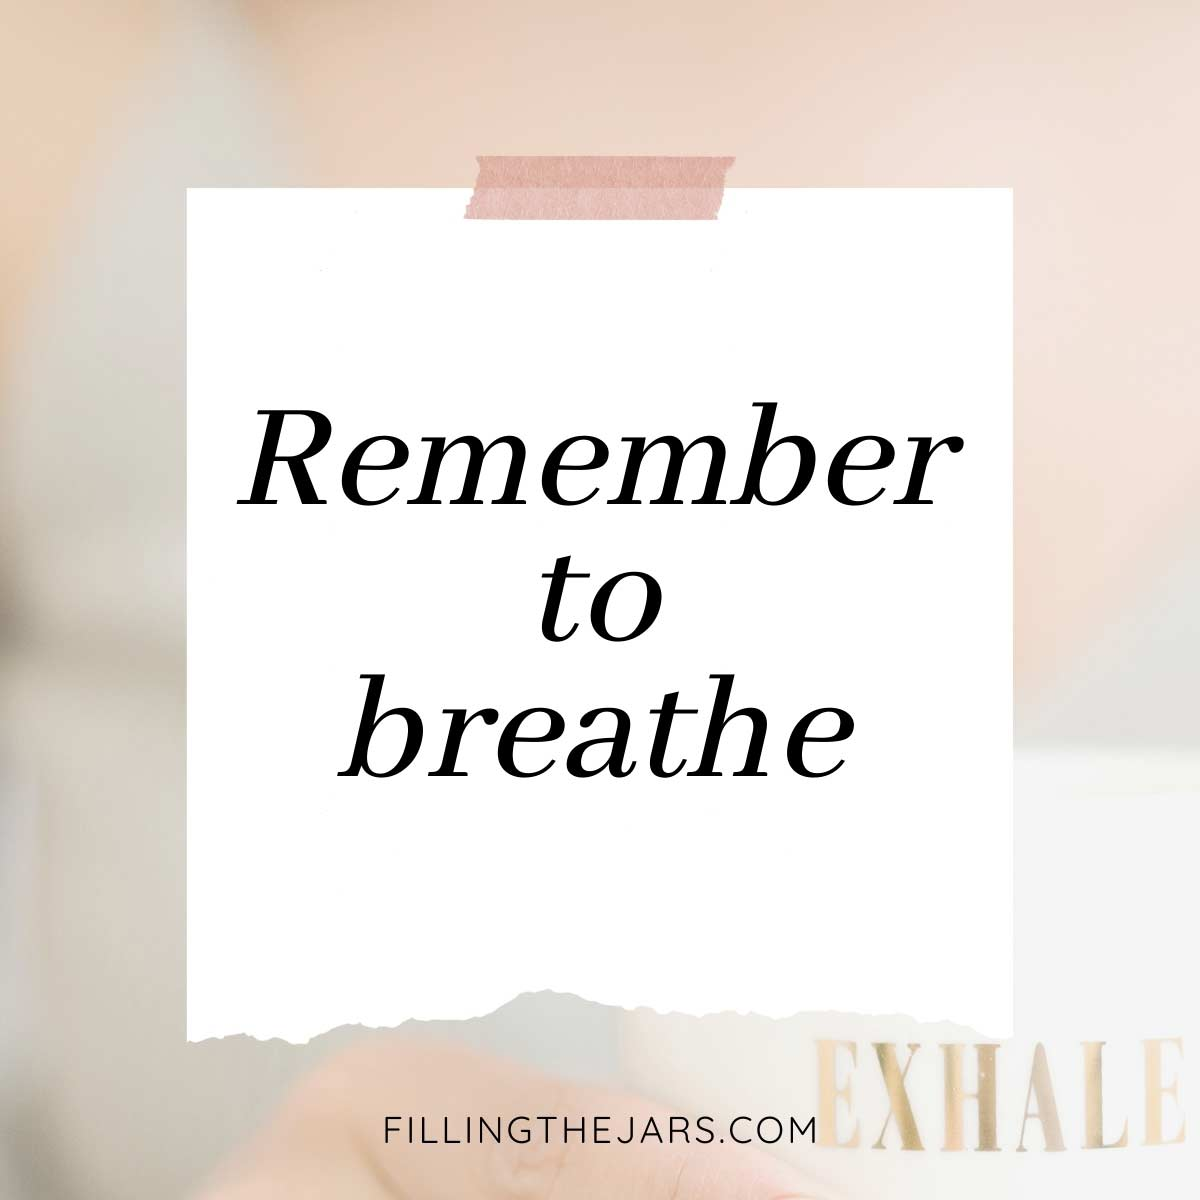 Remember to breathe quote in black text on white ripped-paper background over blurred image of woman holding white coffee mug with the word exhale.